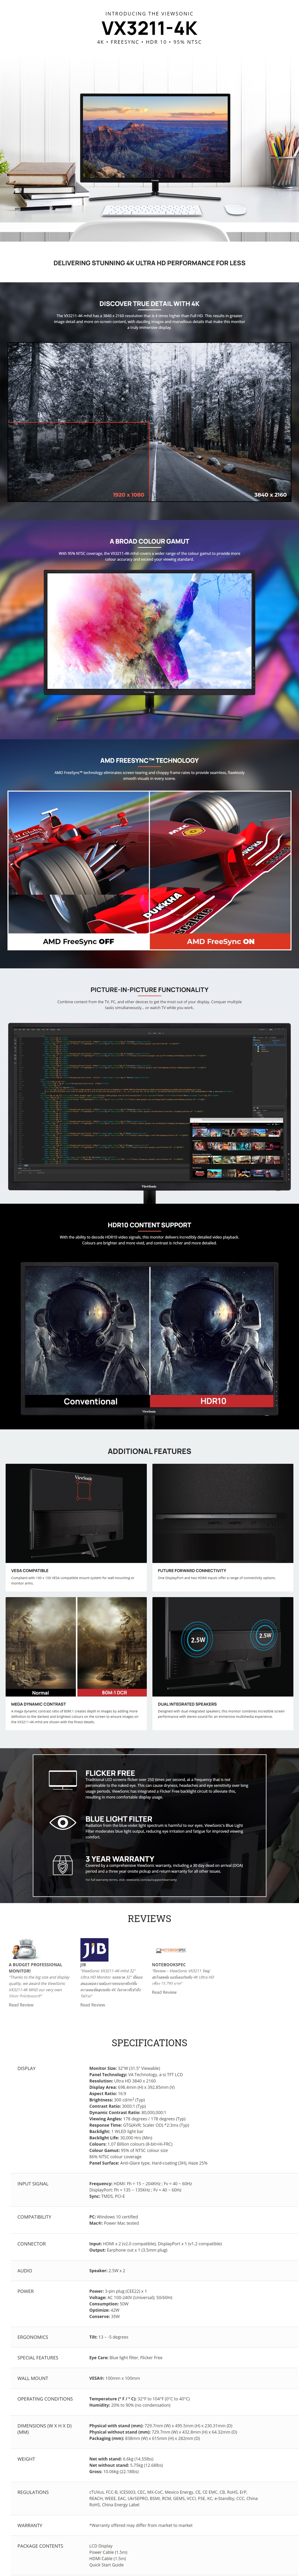 """A large marketing image providing additional information about the product ViewSonic VX3211-4K-mhd 31.5"""" UHD 4K FreeSync 60Hz 2MS VA LED Monitor - Additional alt info not provided"""